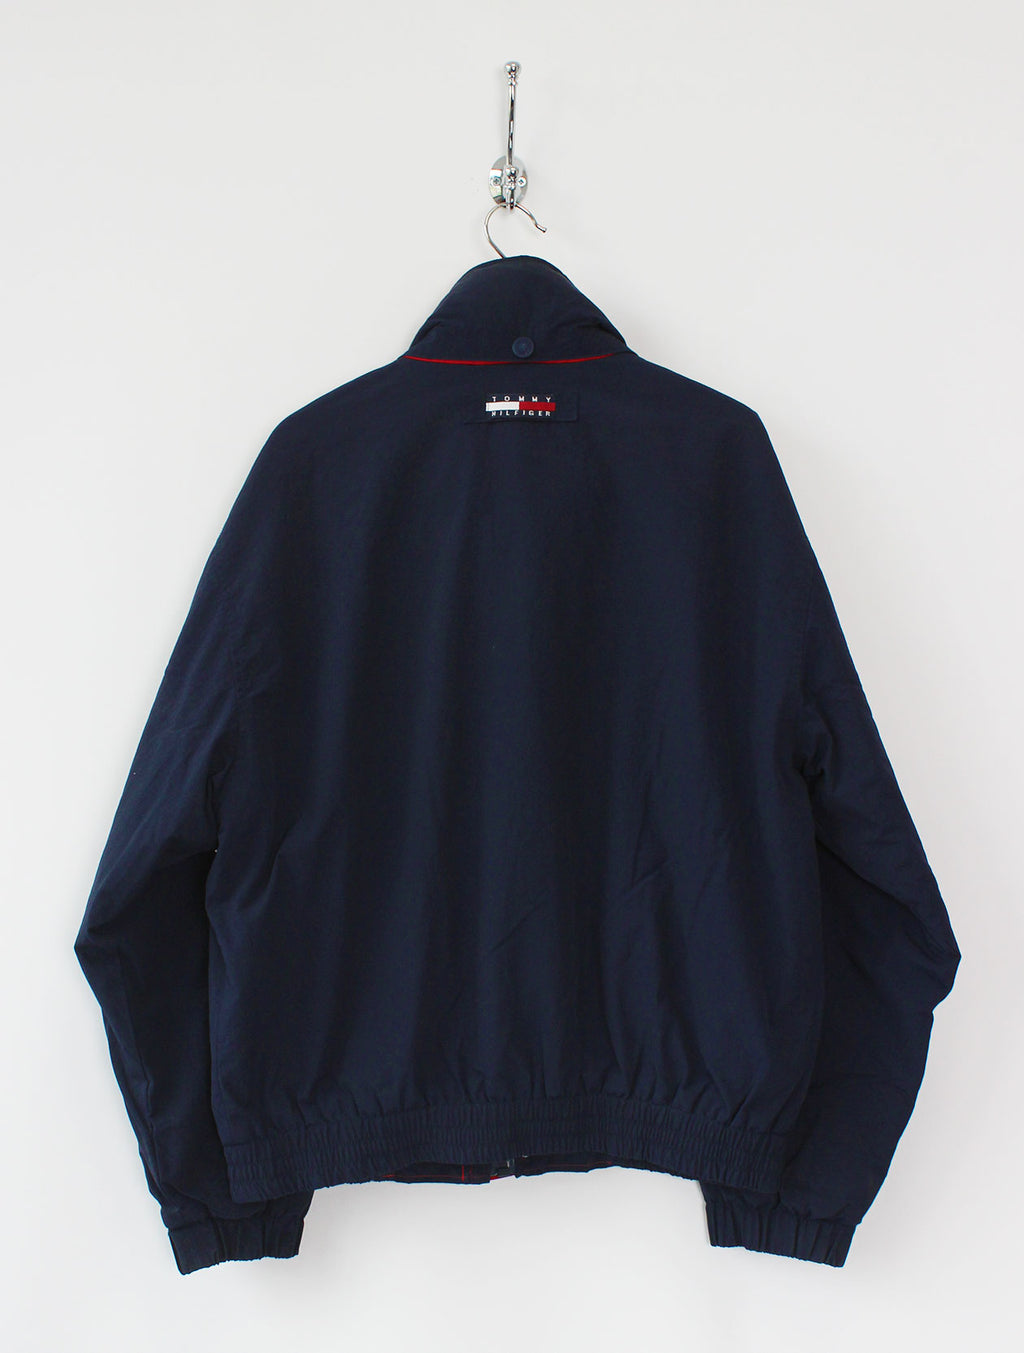 Tommy Hilfiger Fleece Lined Jacket (M)